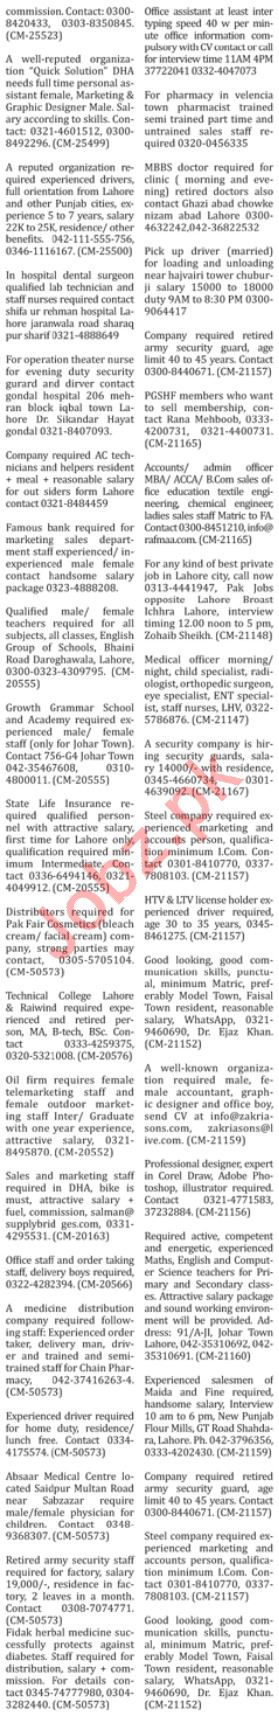 The Nation Sunday Newspaper Classified Ads 30/12/2018